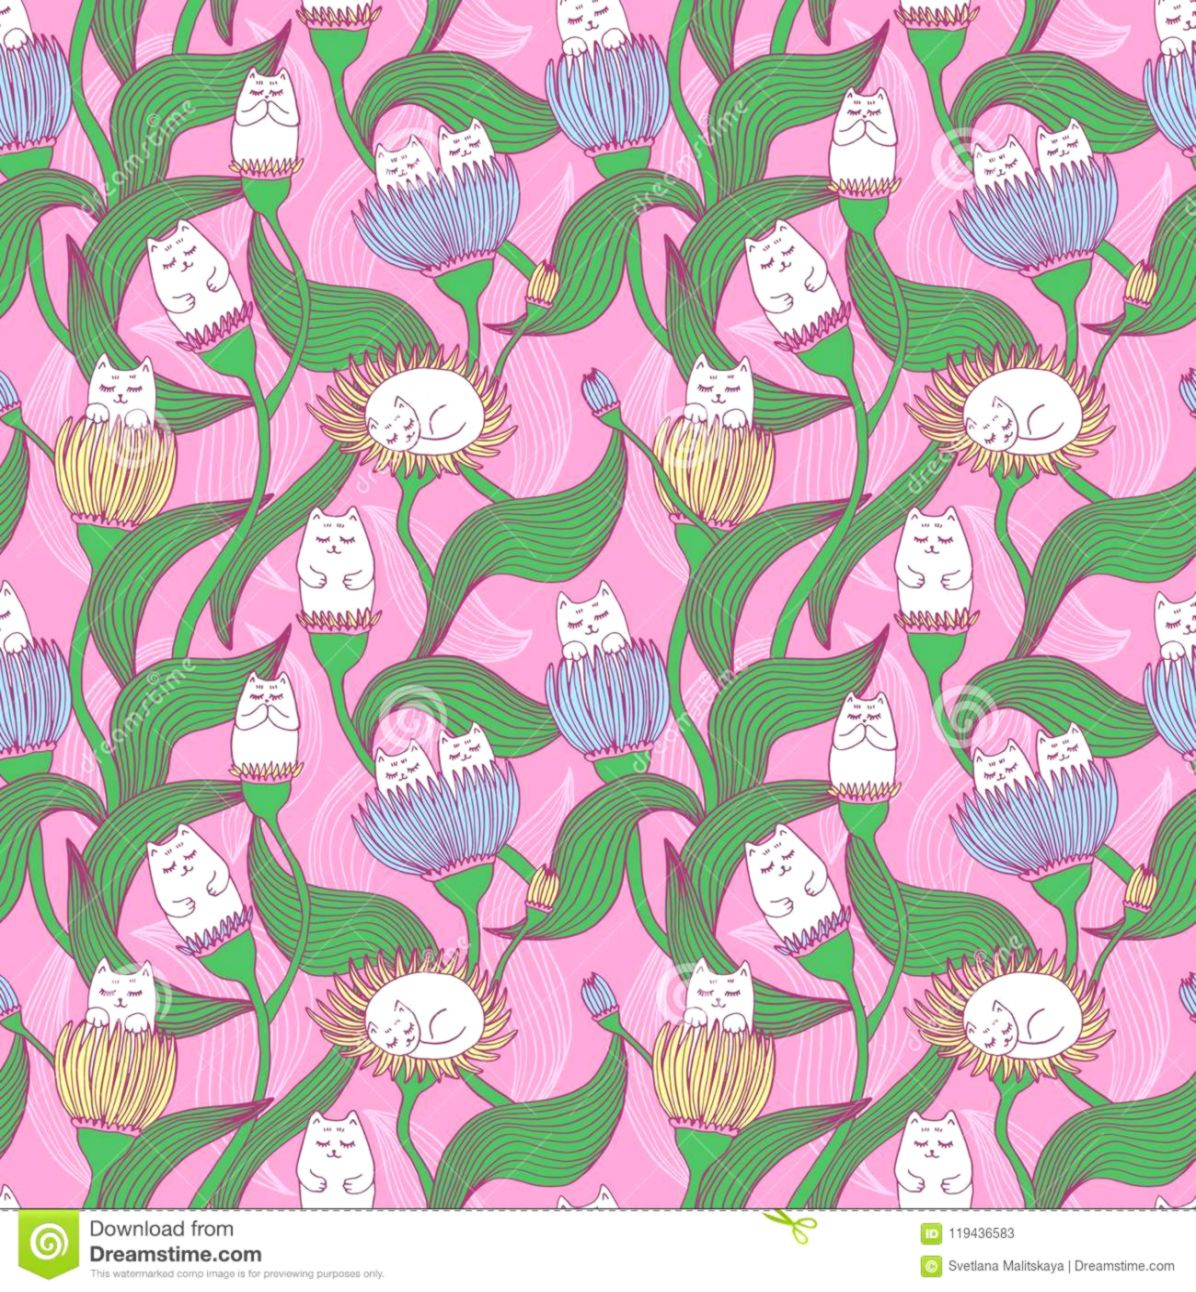 00d81516e26 Cute Seamless Pattern With Cats And Flowers Wallpapers For Kids